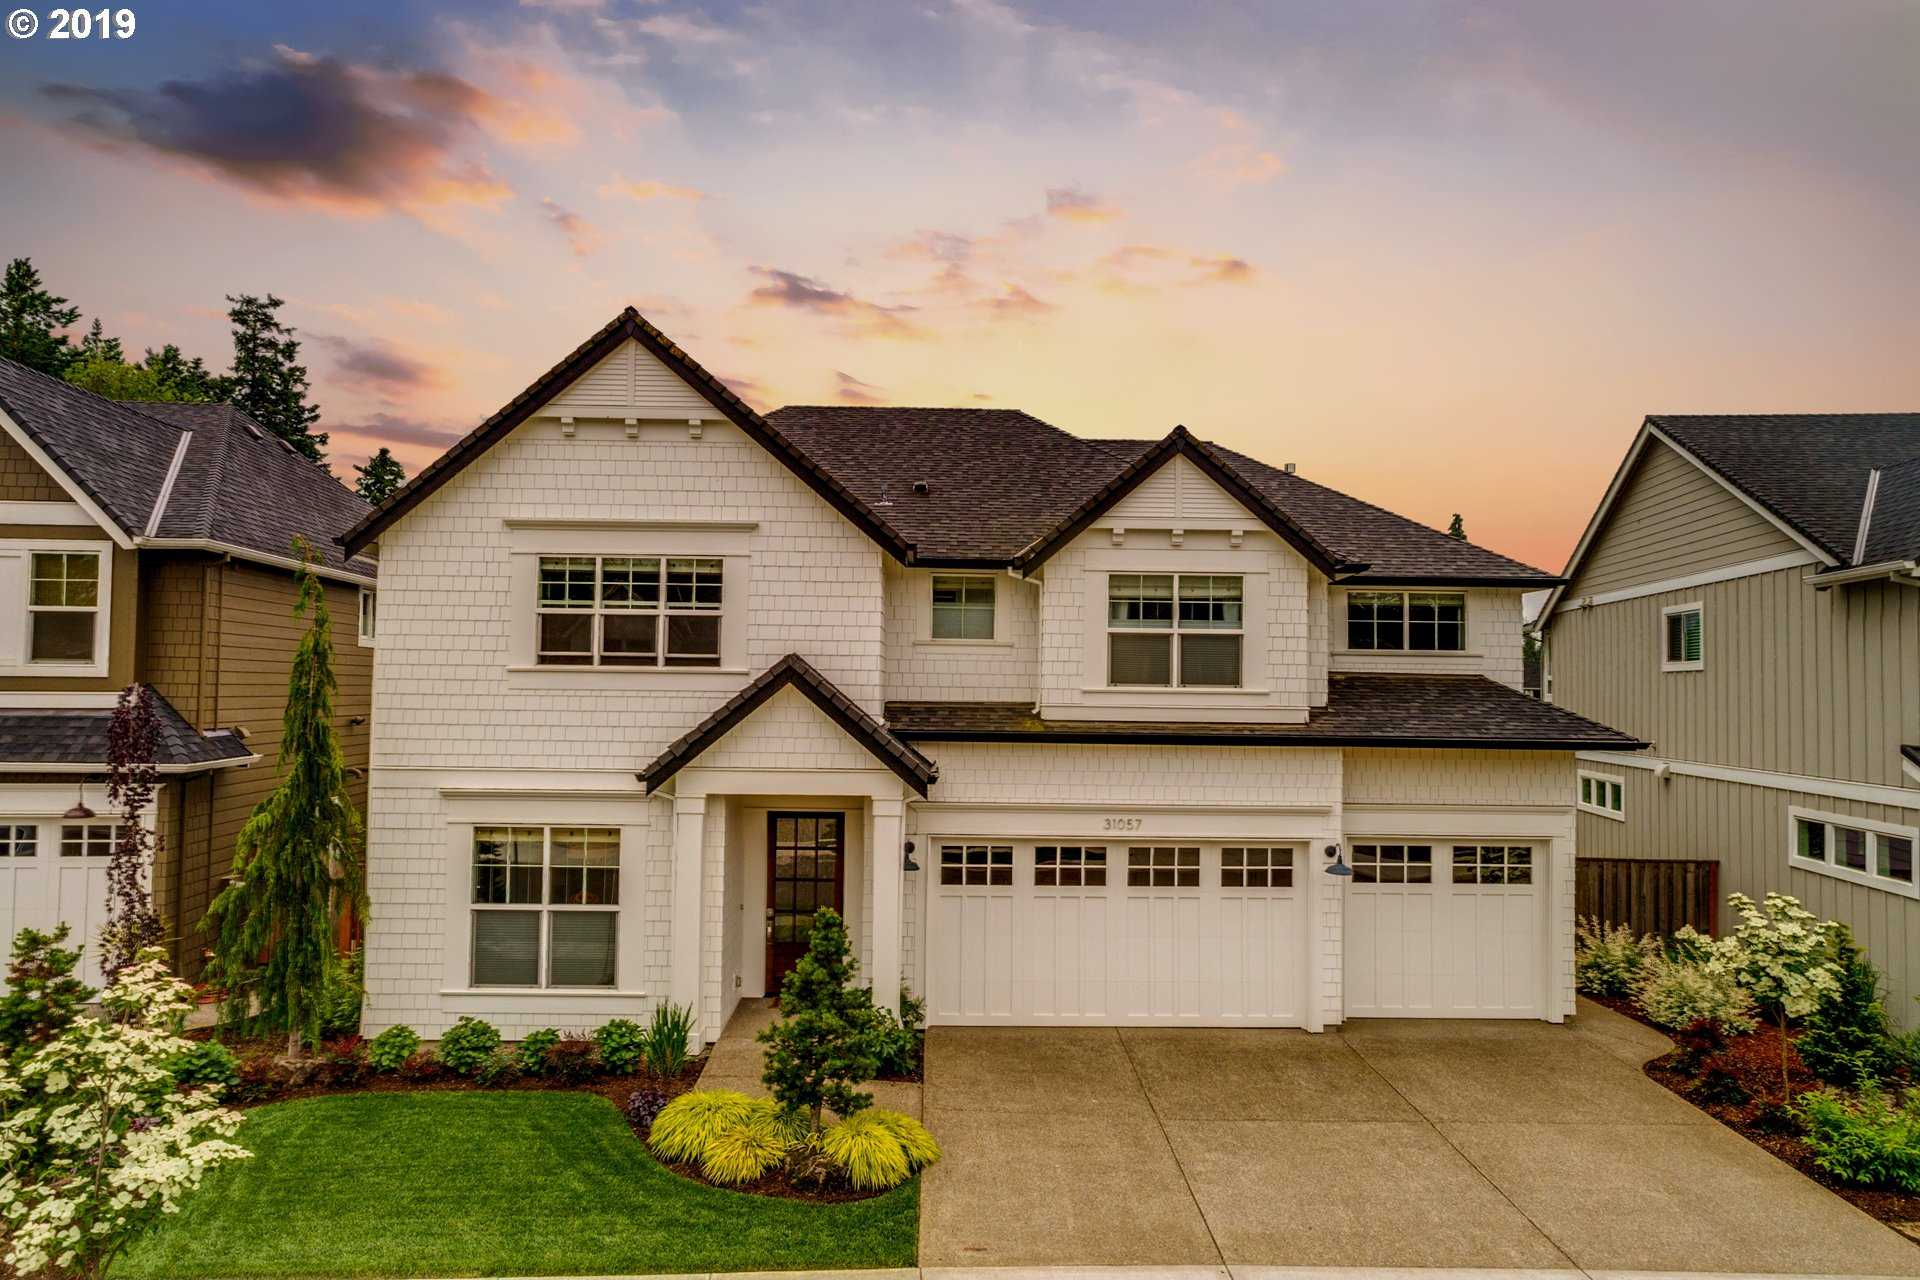 $1,124,900 - 5Br/4Ba -  for Sale in Wilsonville